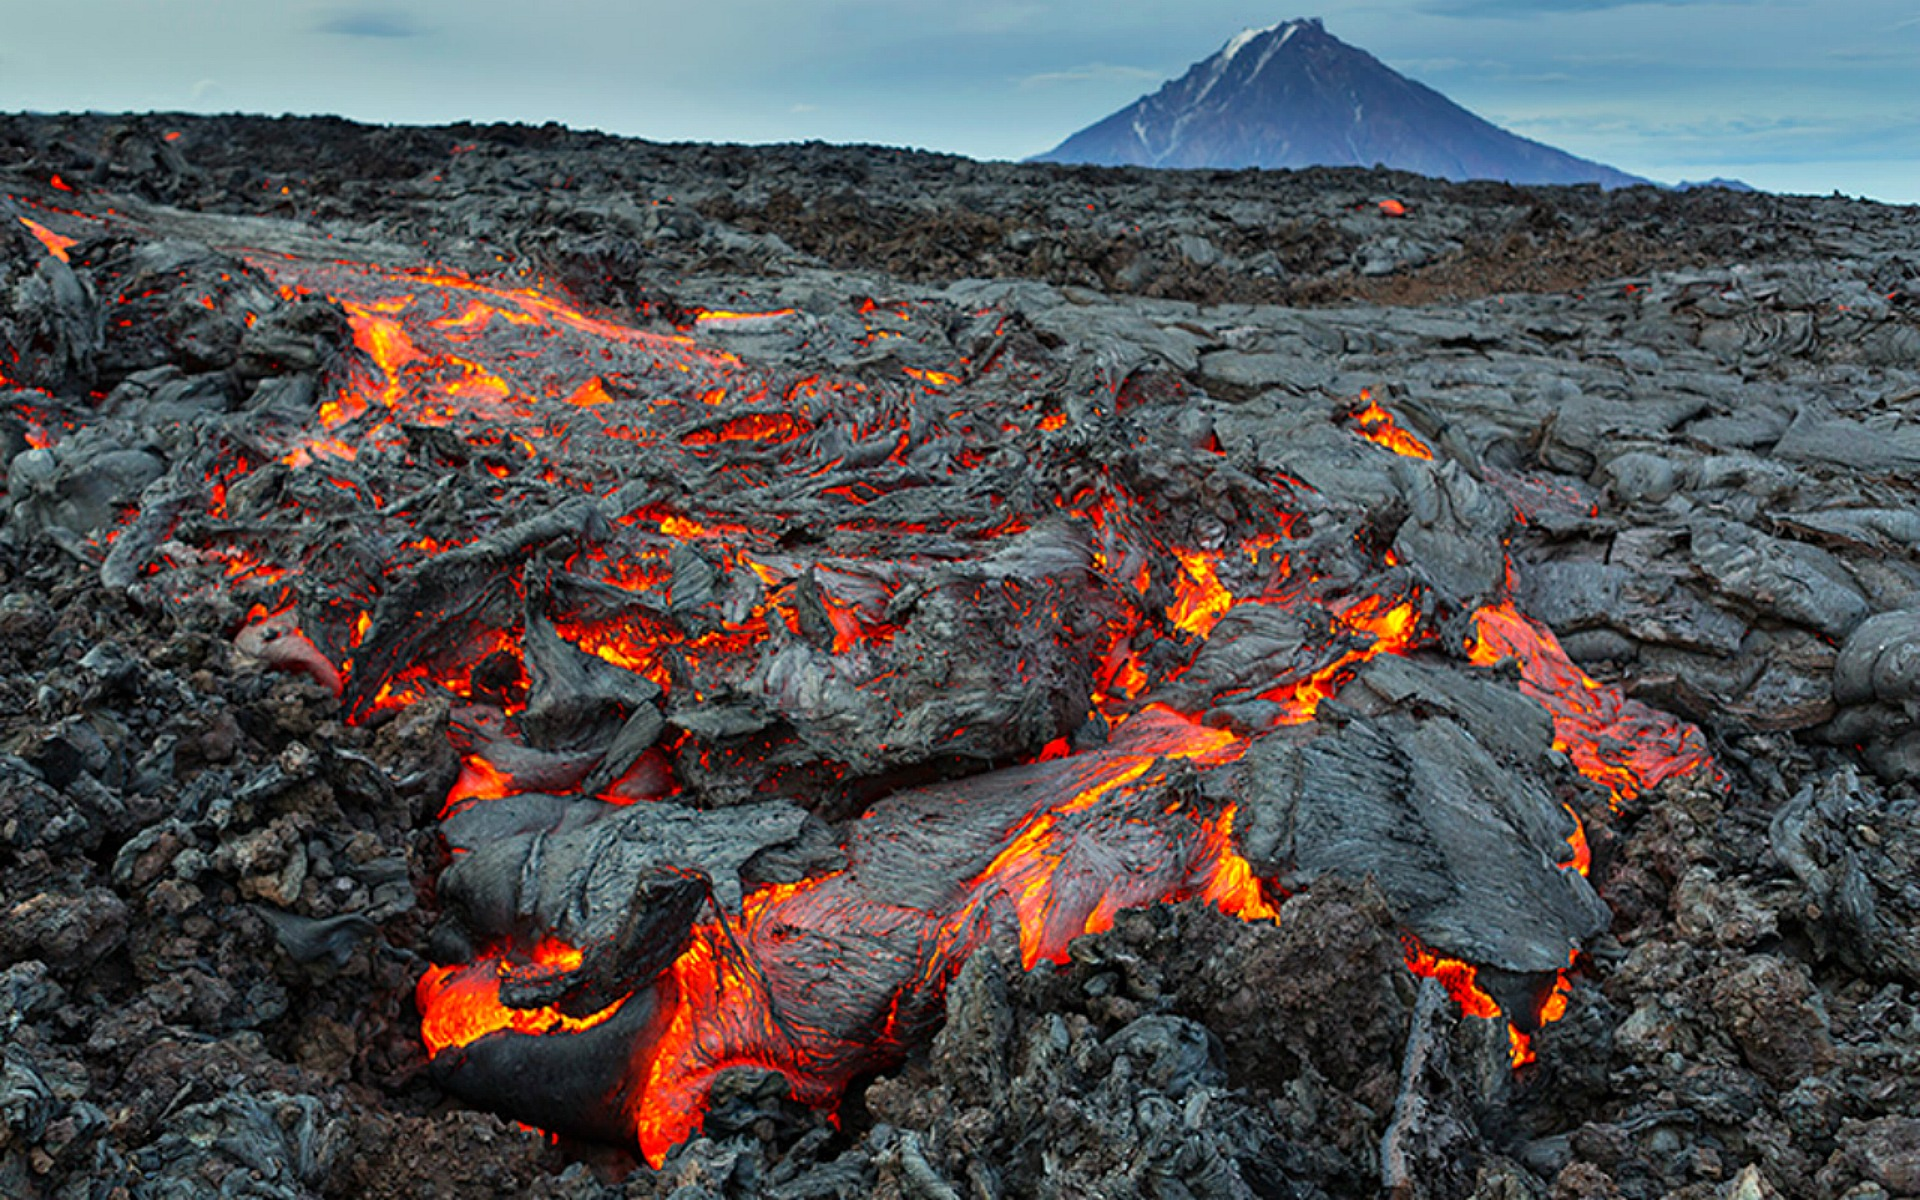 Lava from a Distant Volcano